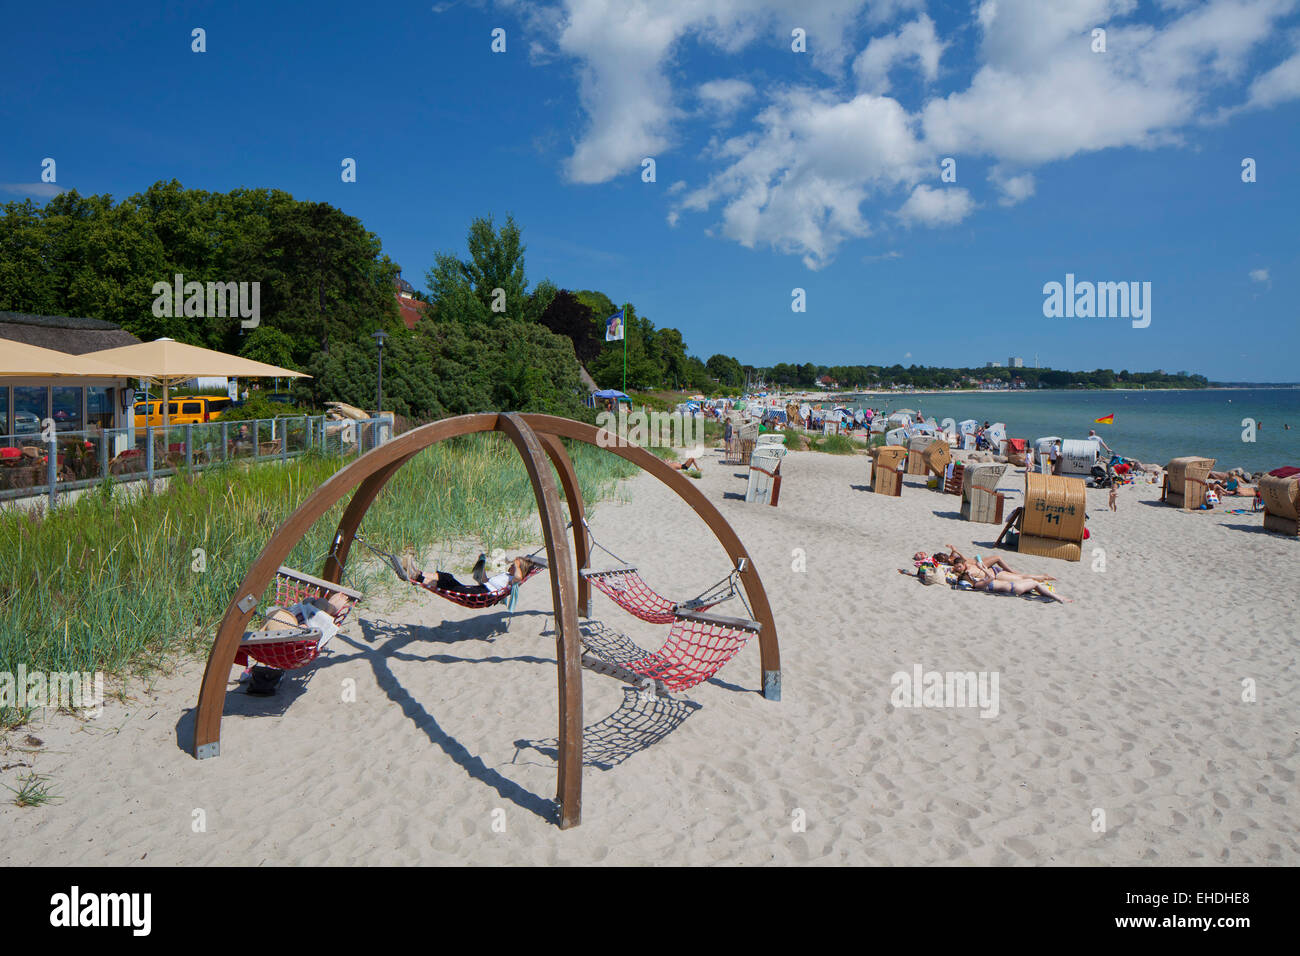 Sunbathers in hammocks and beach chairs at the seaside resort Haffkrug, Schleswig-Holstein, Germany - Stock Image